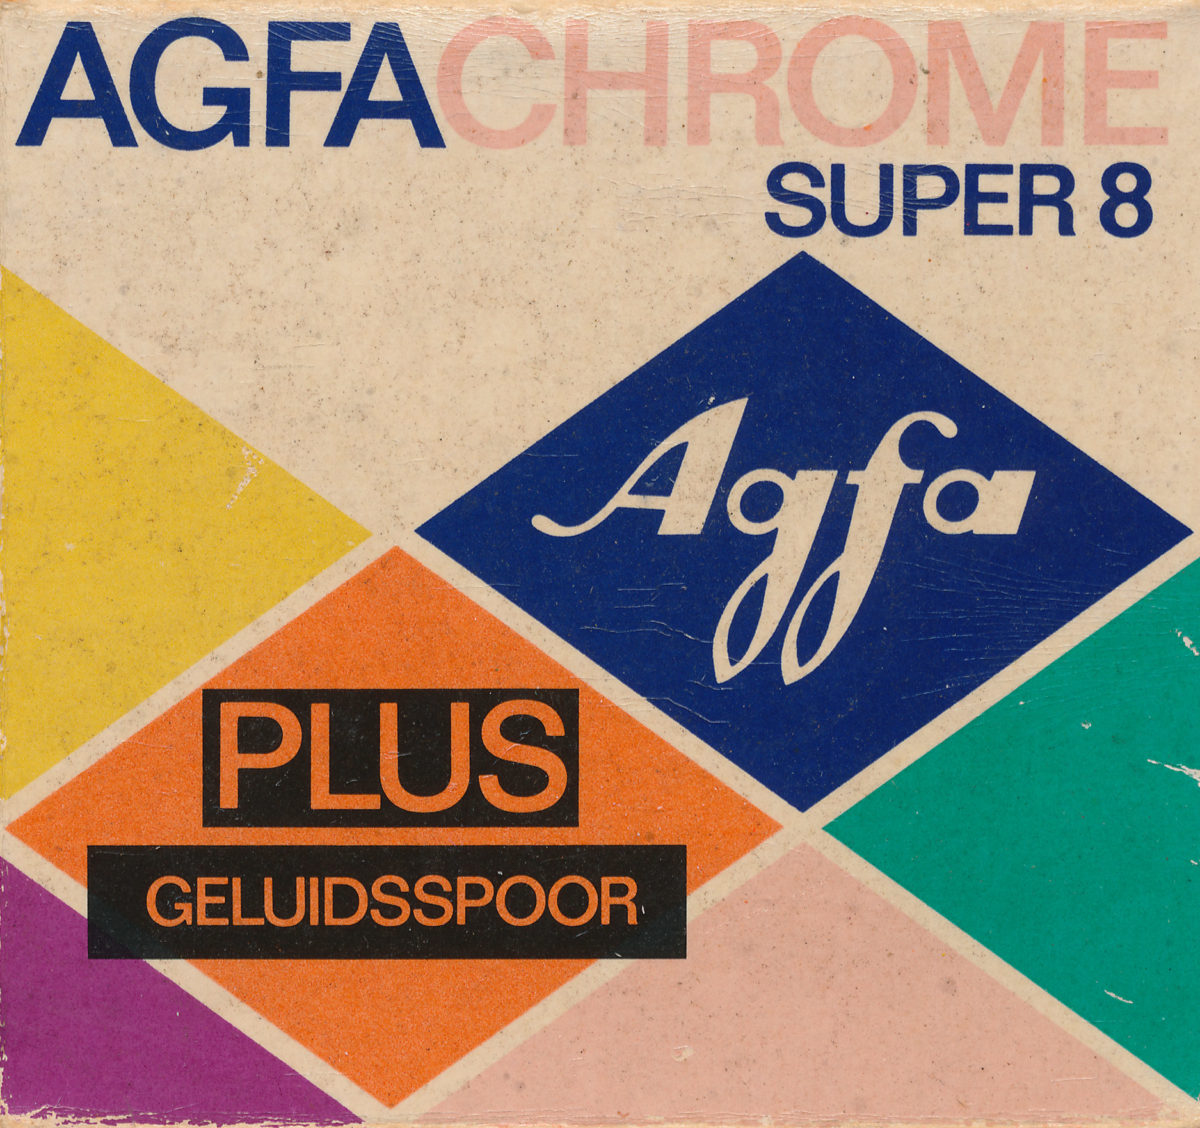 Agfachrome with soundstripe